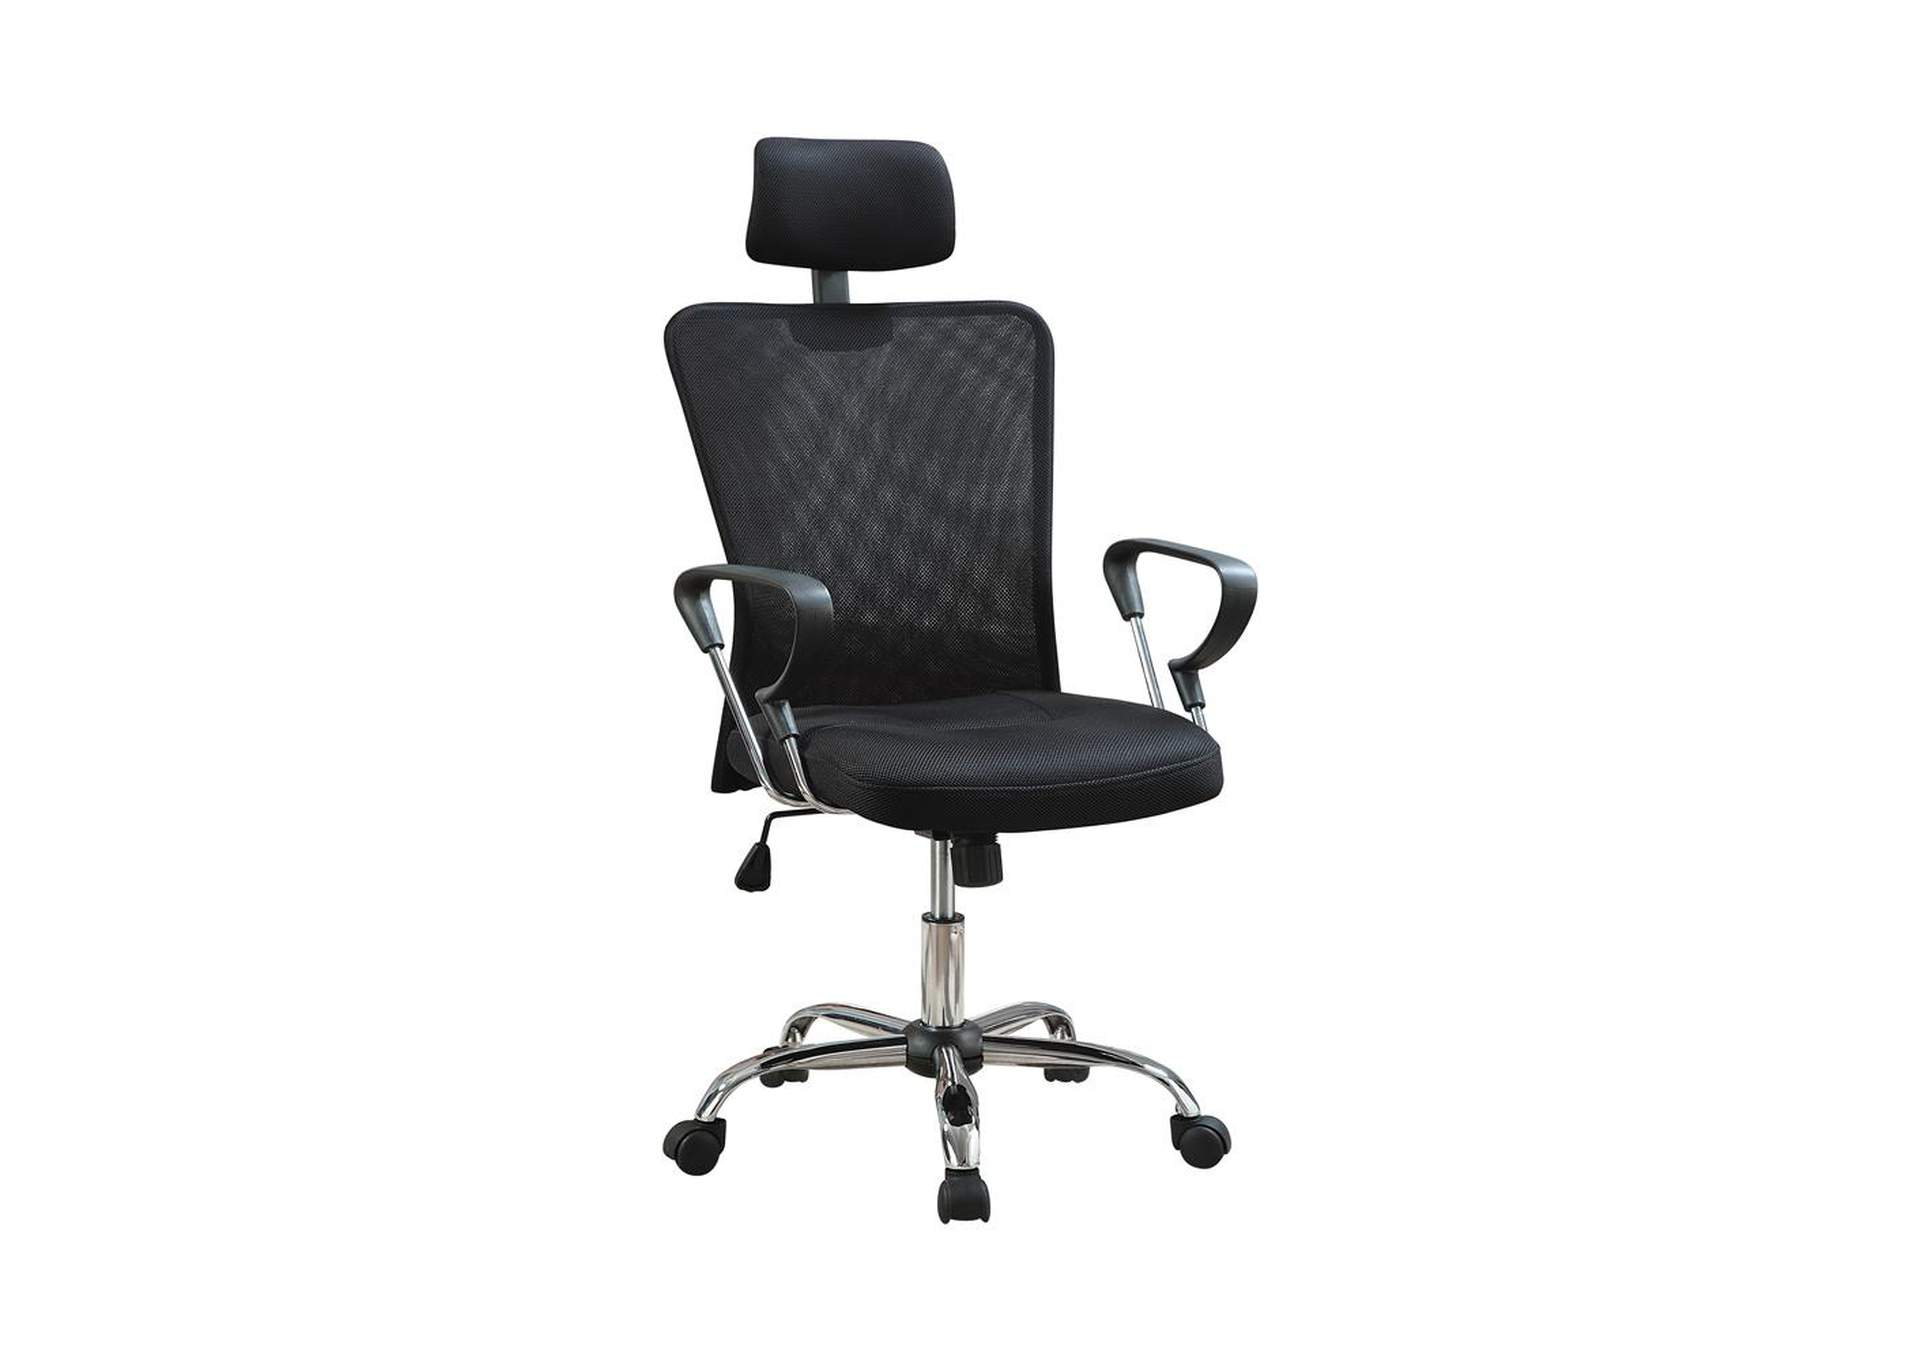 Tuna Casual Black Office Chair W/ Headrest,Coaster Furniture